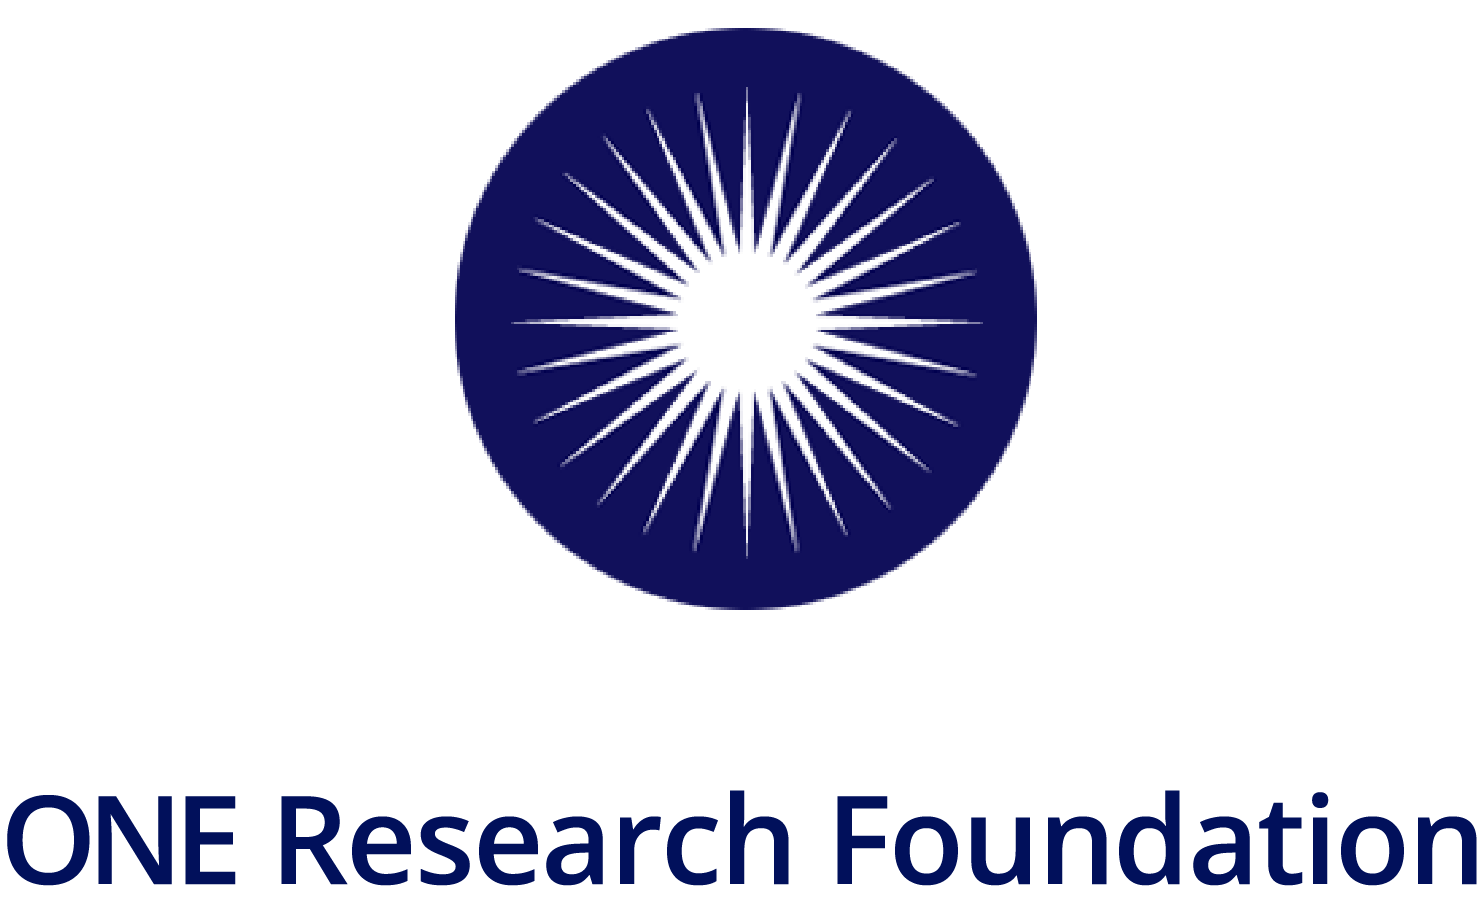 One Research Foundation